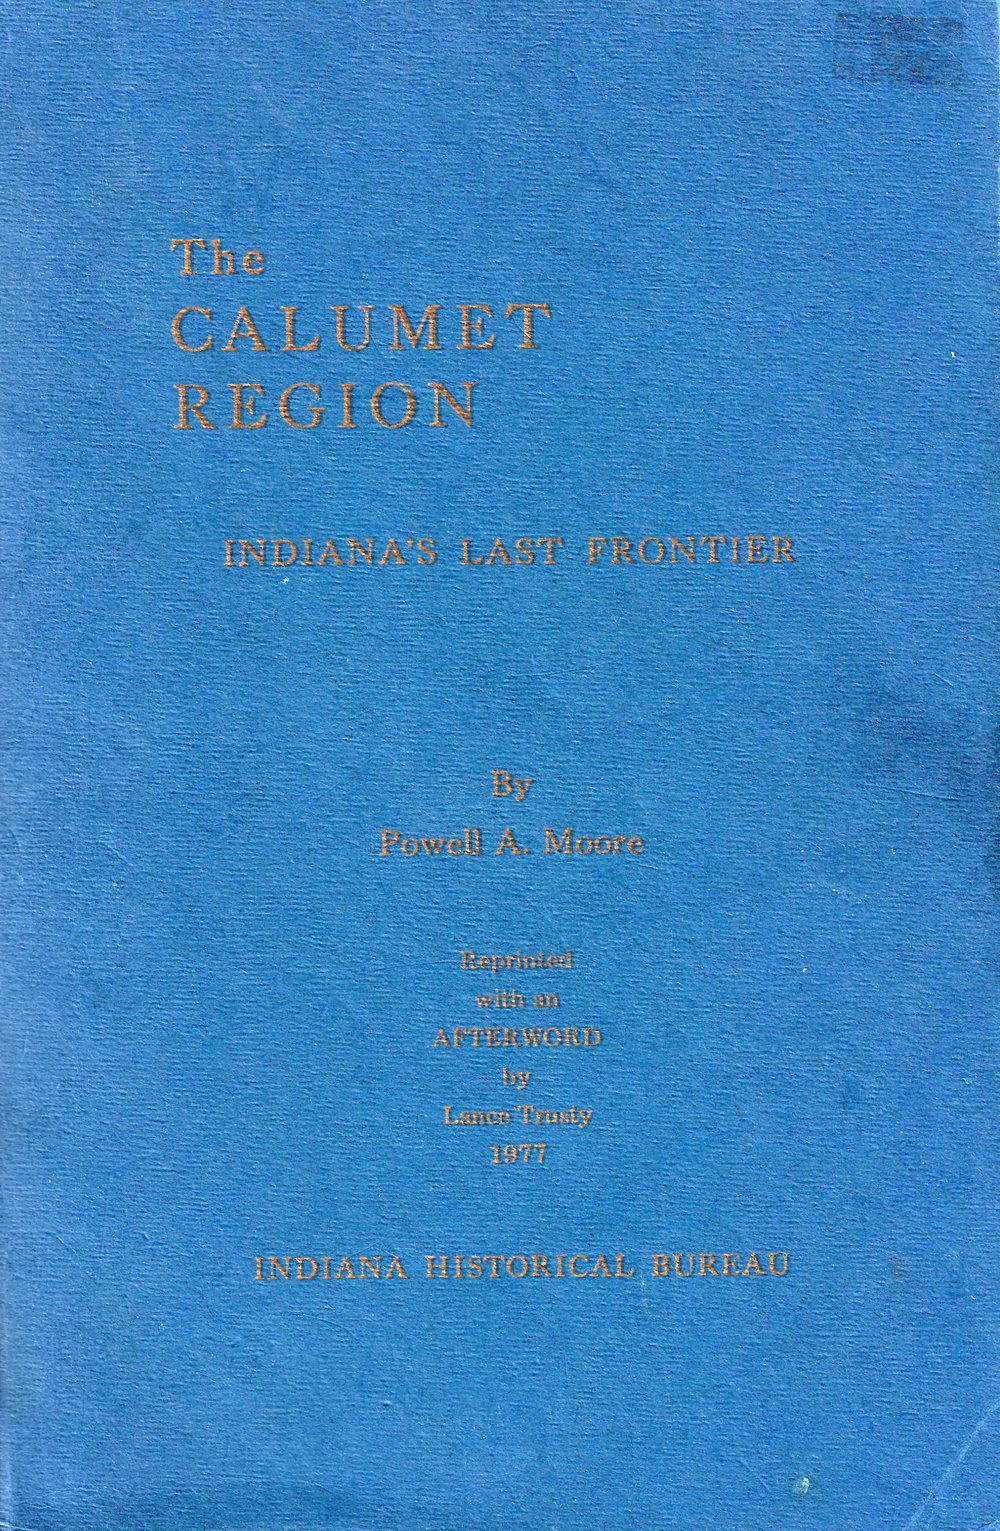 The Calumet Region: Indiana's Last Frontier by Powell A. Moore (1959)